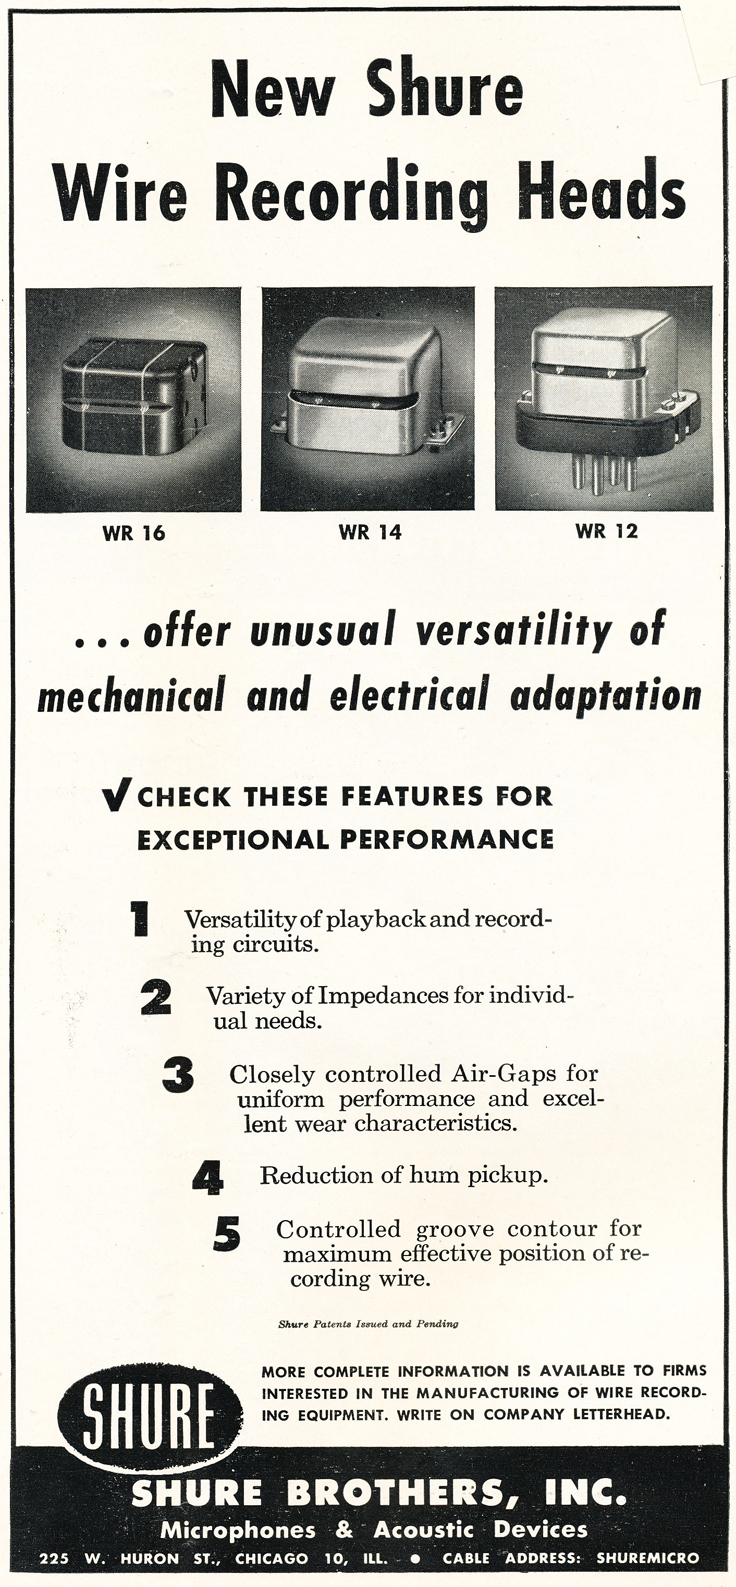 1948 ad for Shure reel tape recorder heads in Reel2ReelTexas.com's vintage recording collection